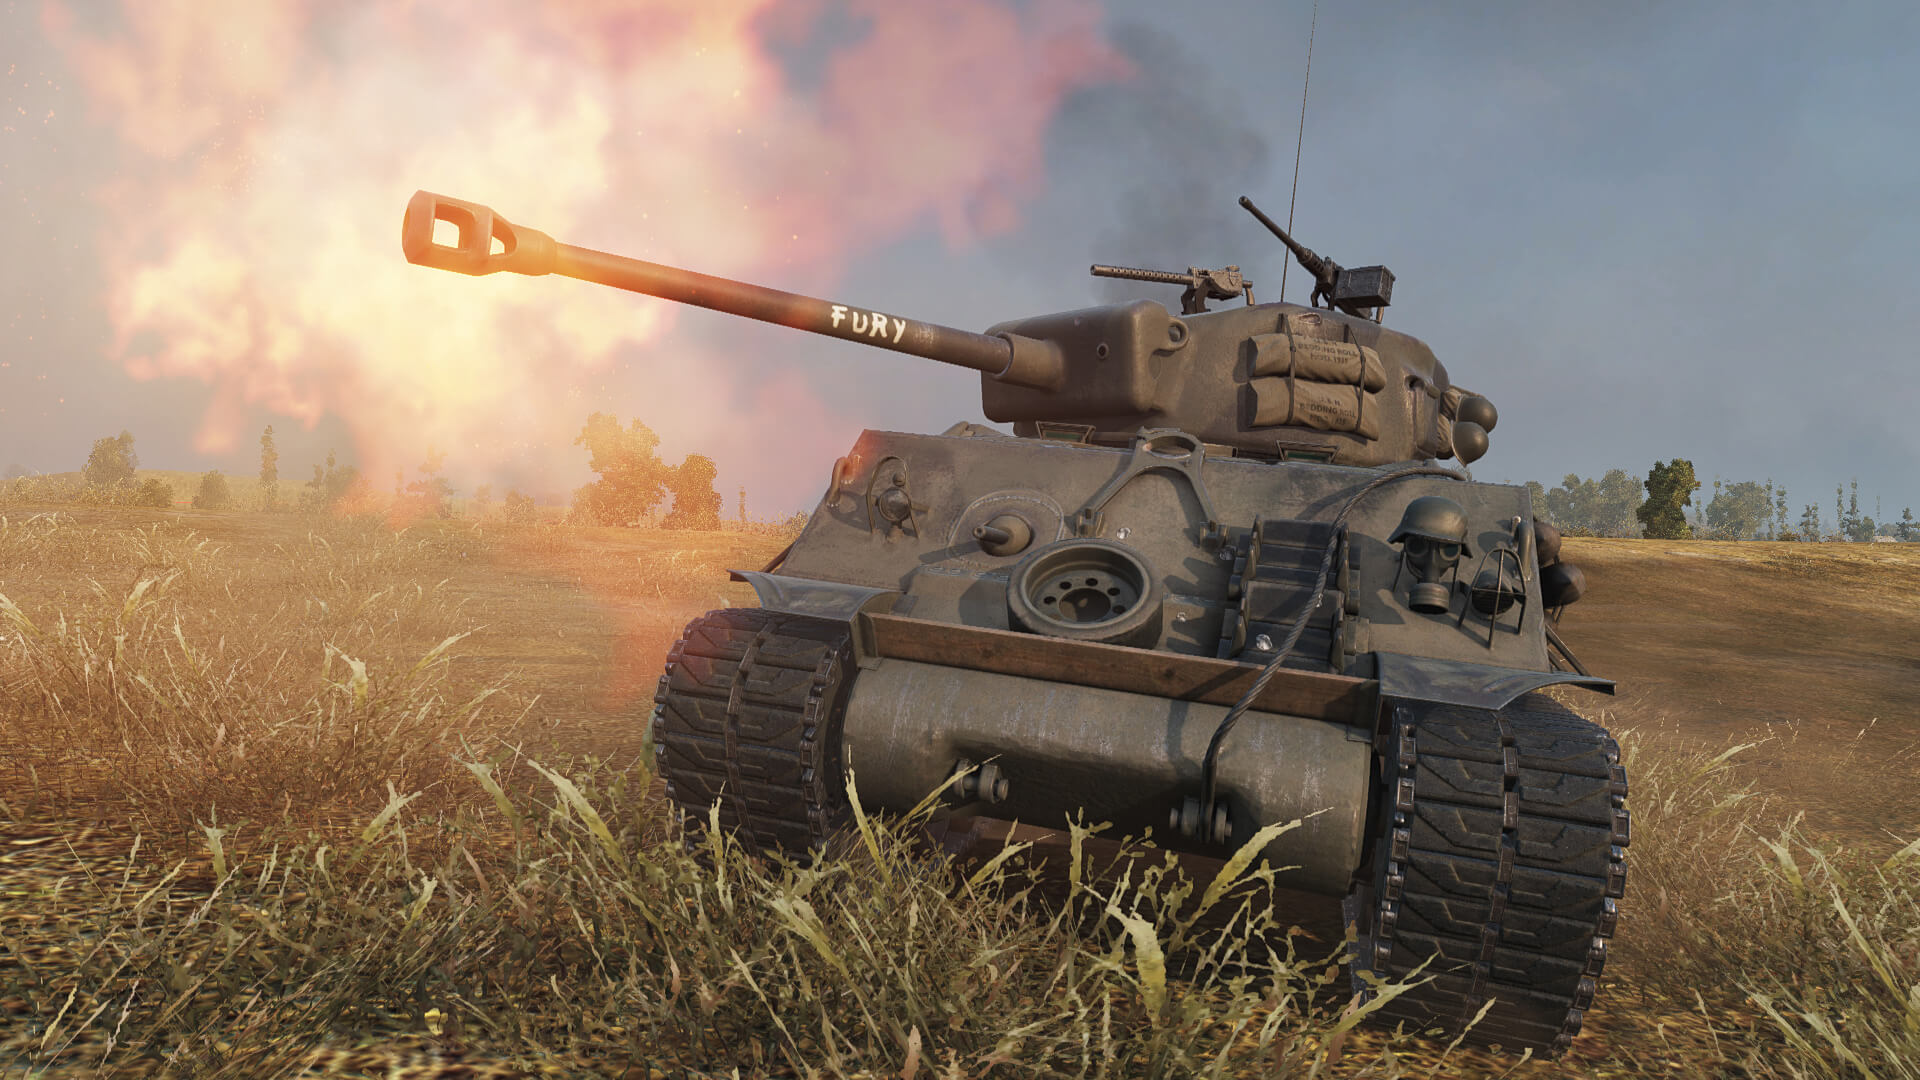 The Fury Makes a Return to the World of Tanks Premium Shop | AllGamers